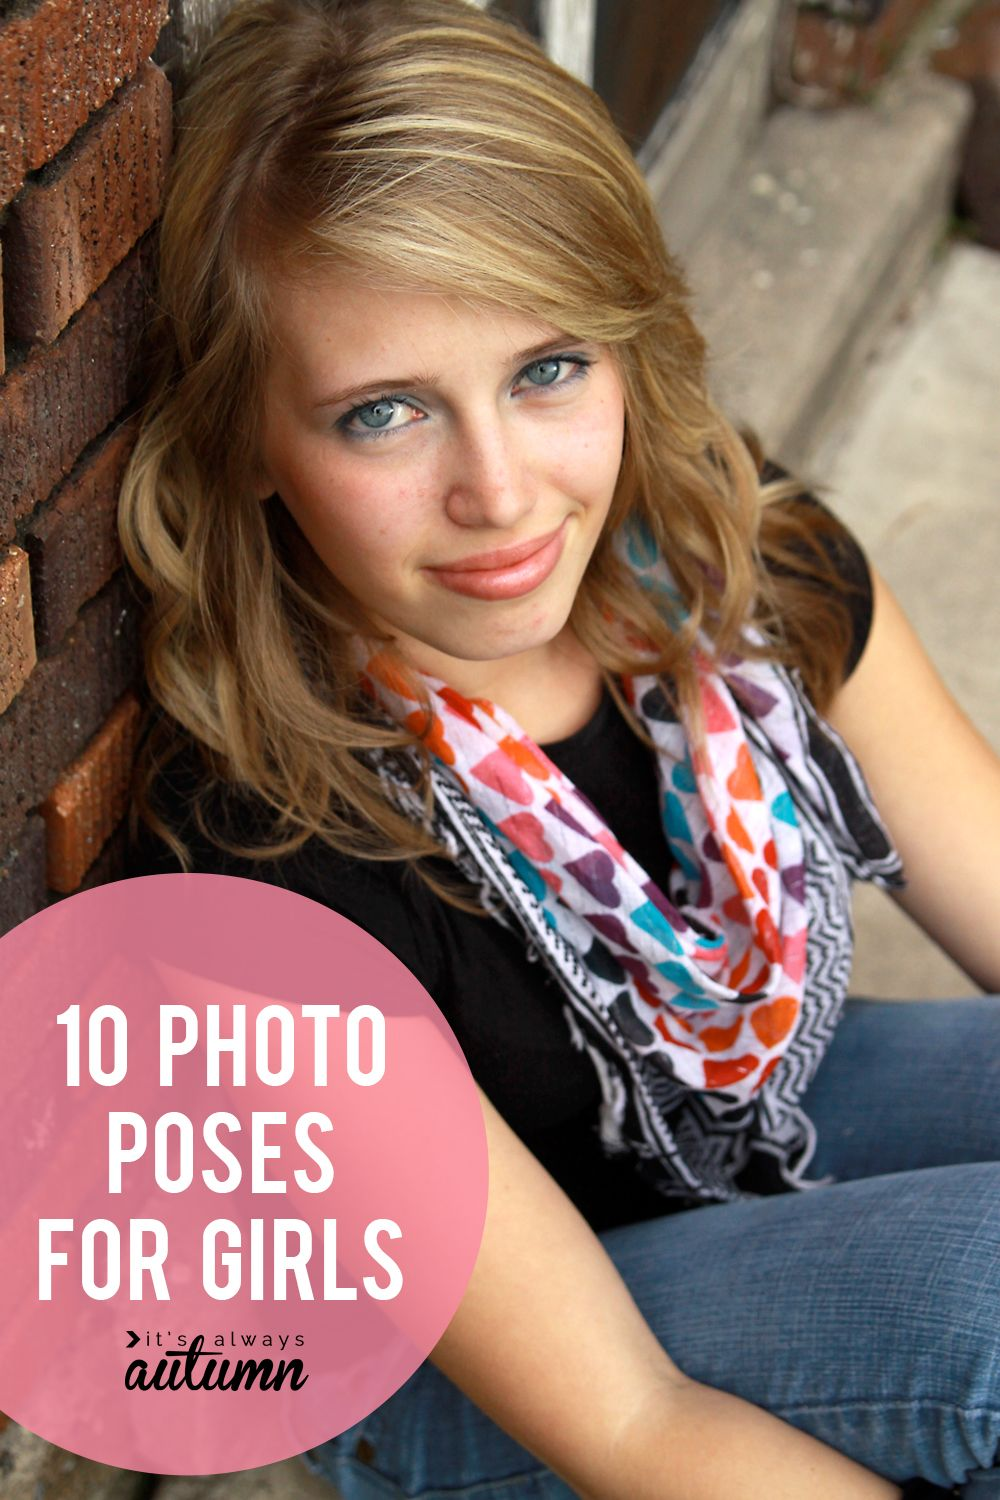 Find a great photo pose for girls with this list of 10 posing ideas for girls. #photography #photoposes